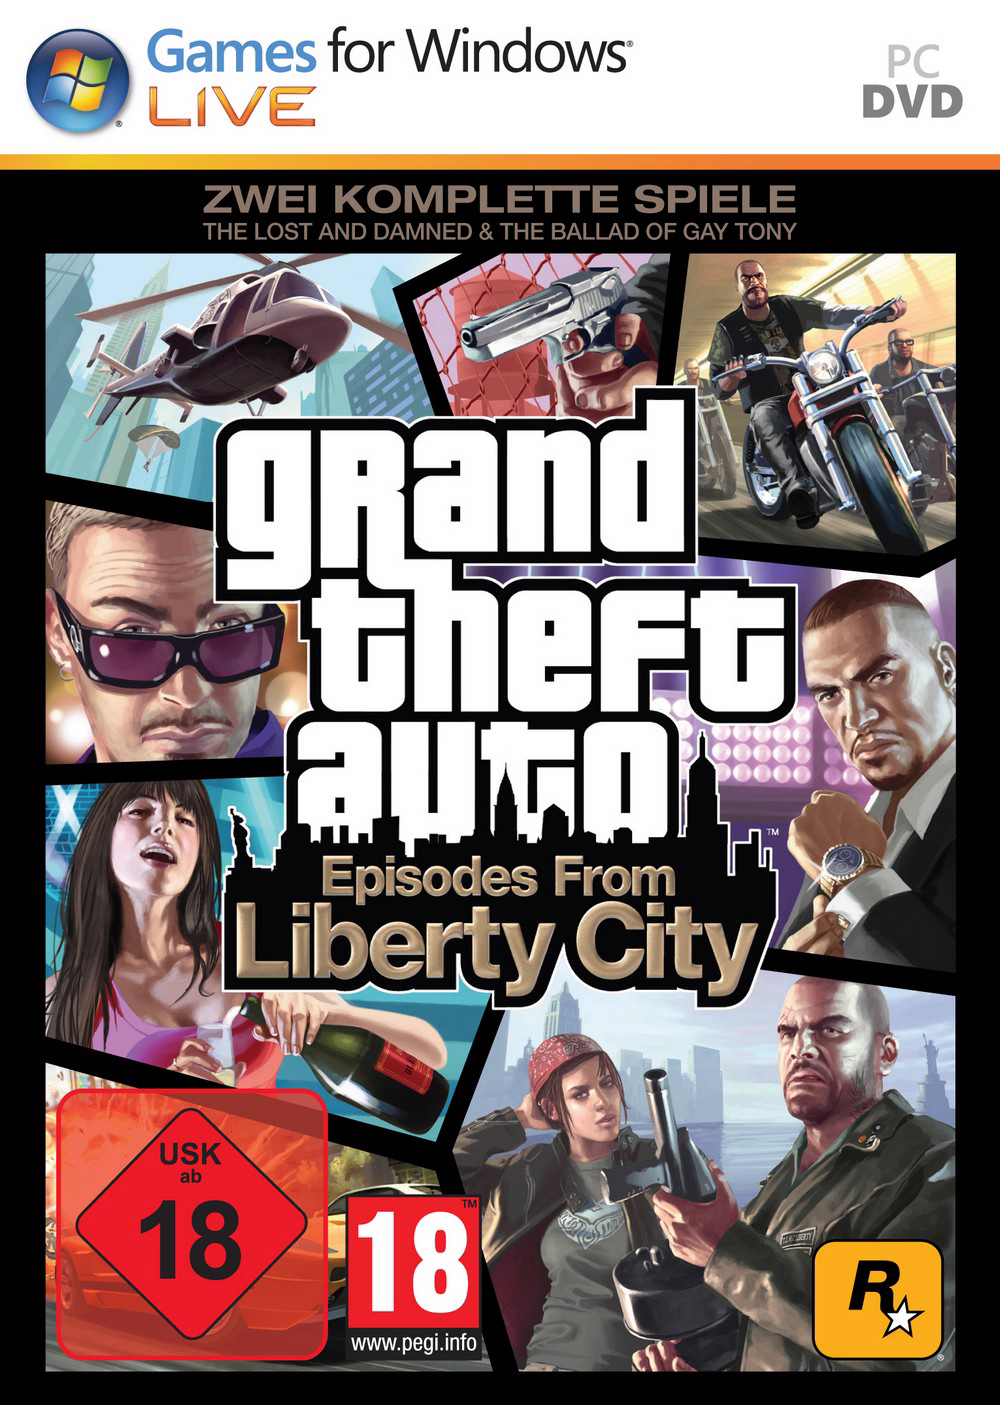 Episodes from Liberty City Pc Cover